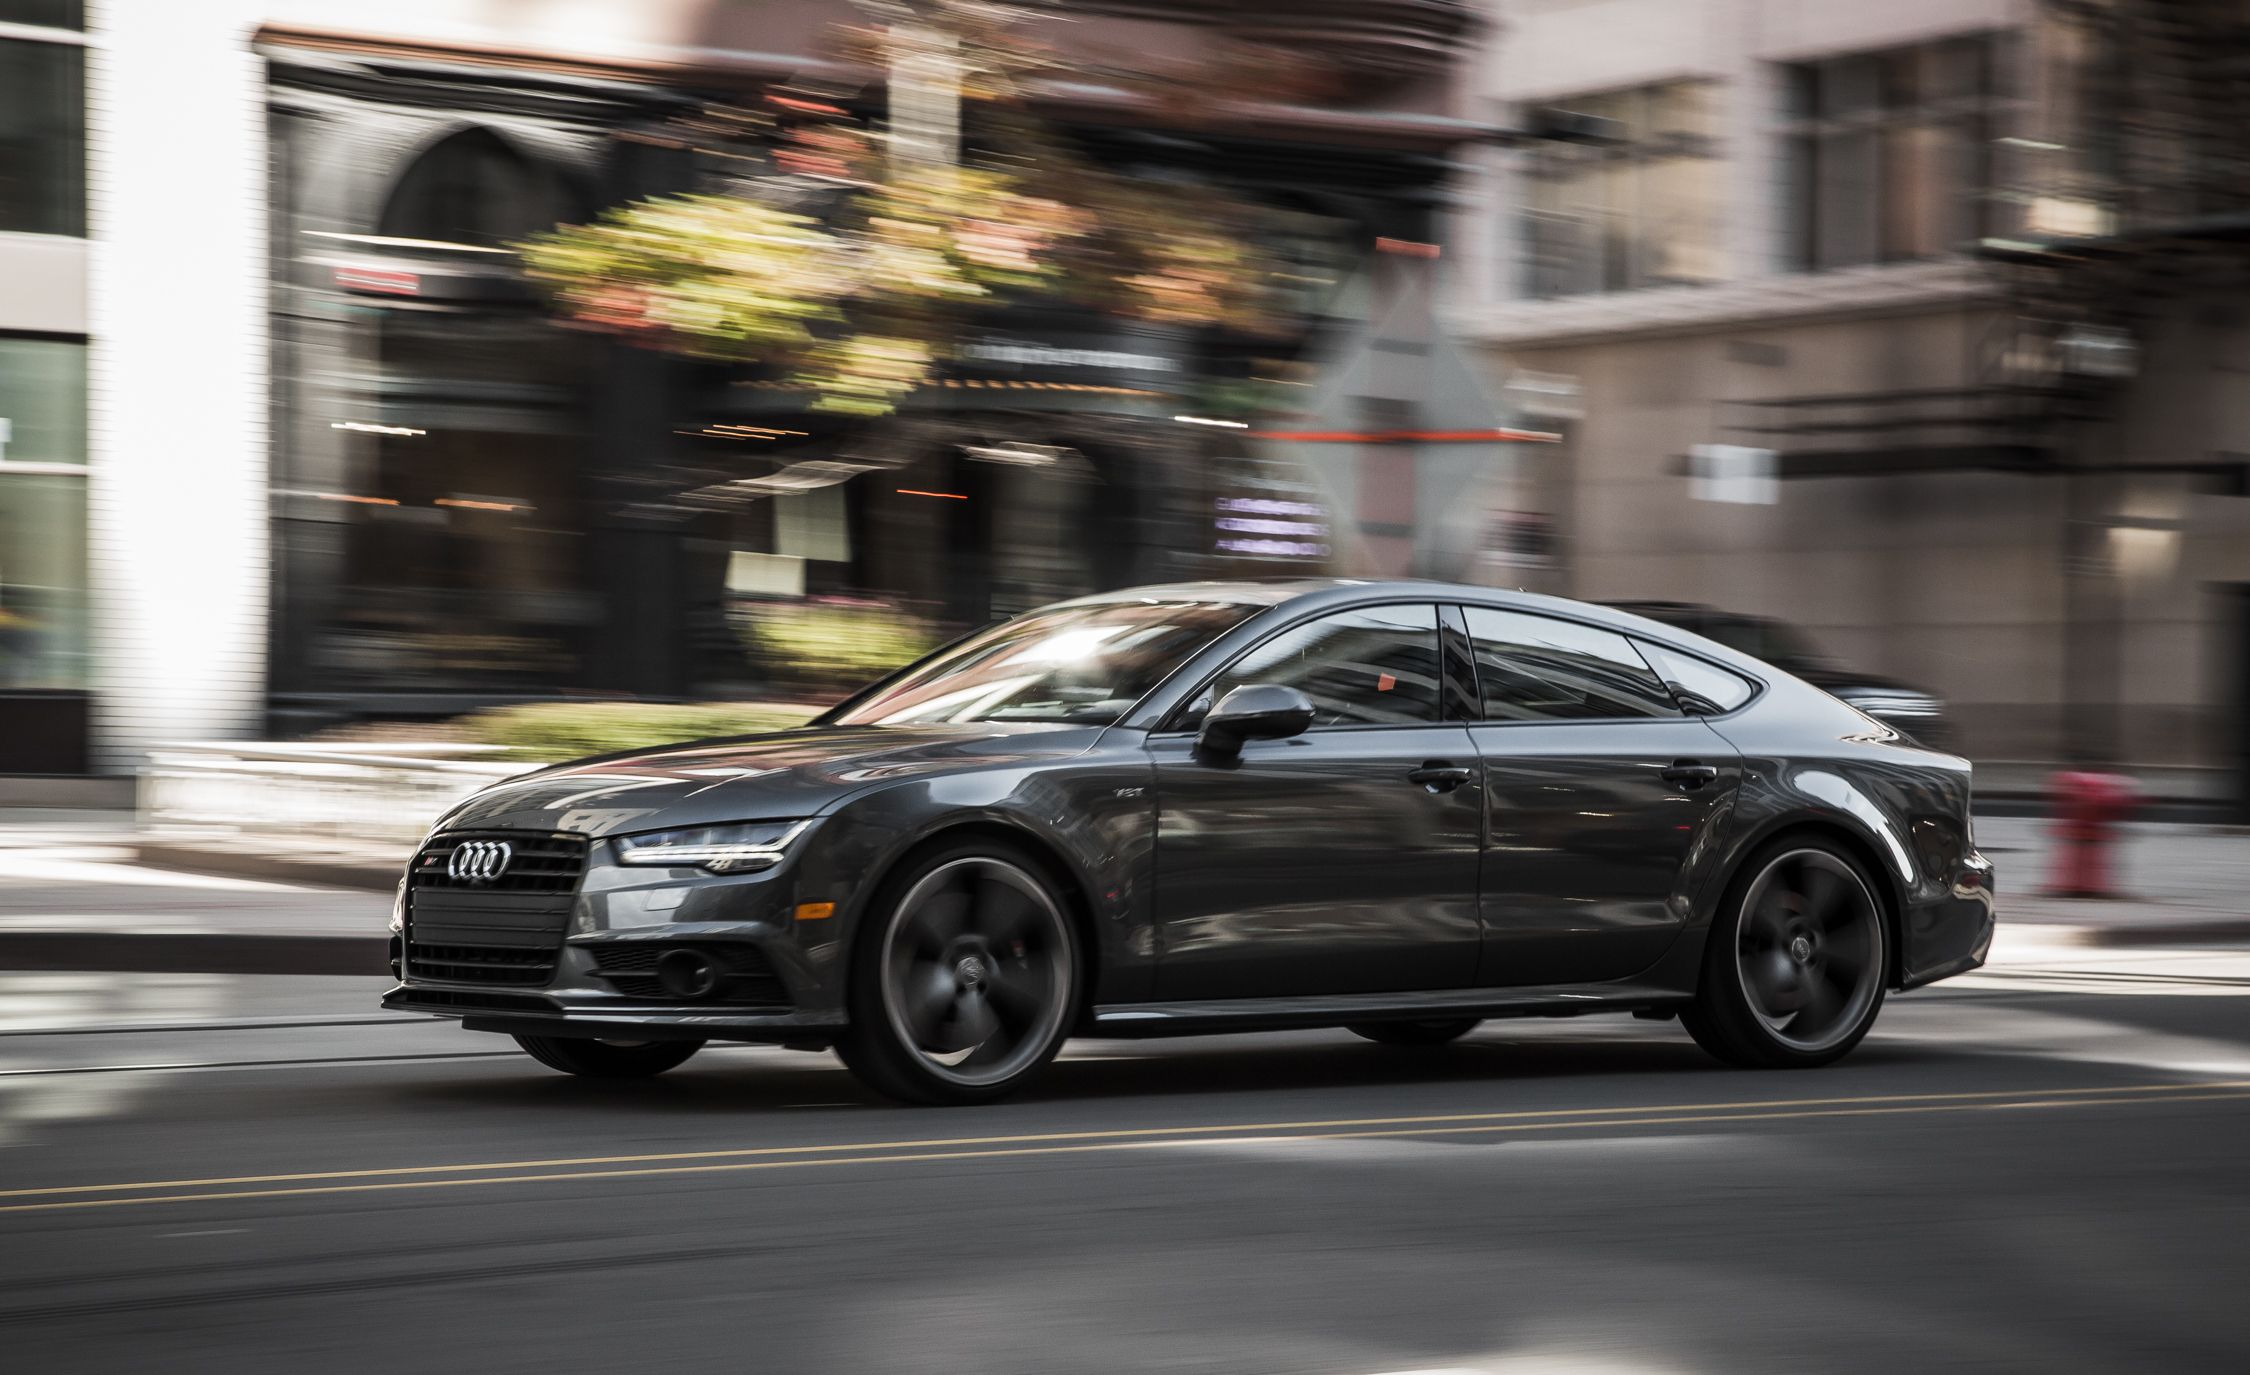 מתוחכם 2018 Audi S7 Reviews | Audi S7 Price, Photos, and Specs | Car and QU-52